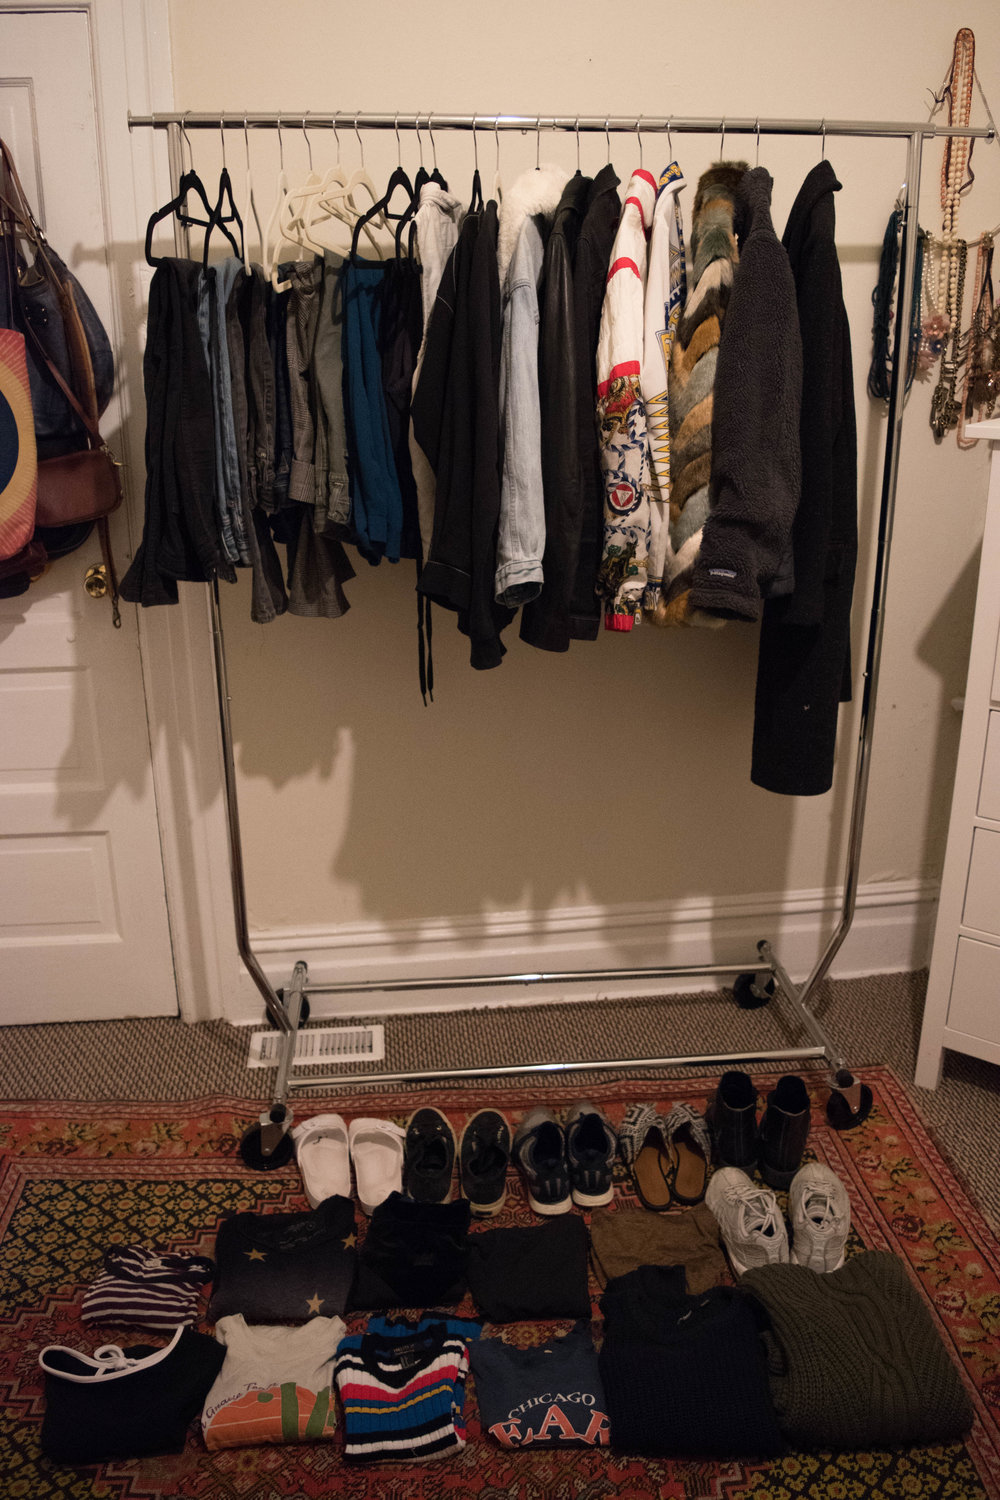 My capsule wardrobe, front and center.